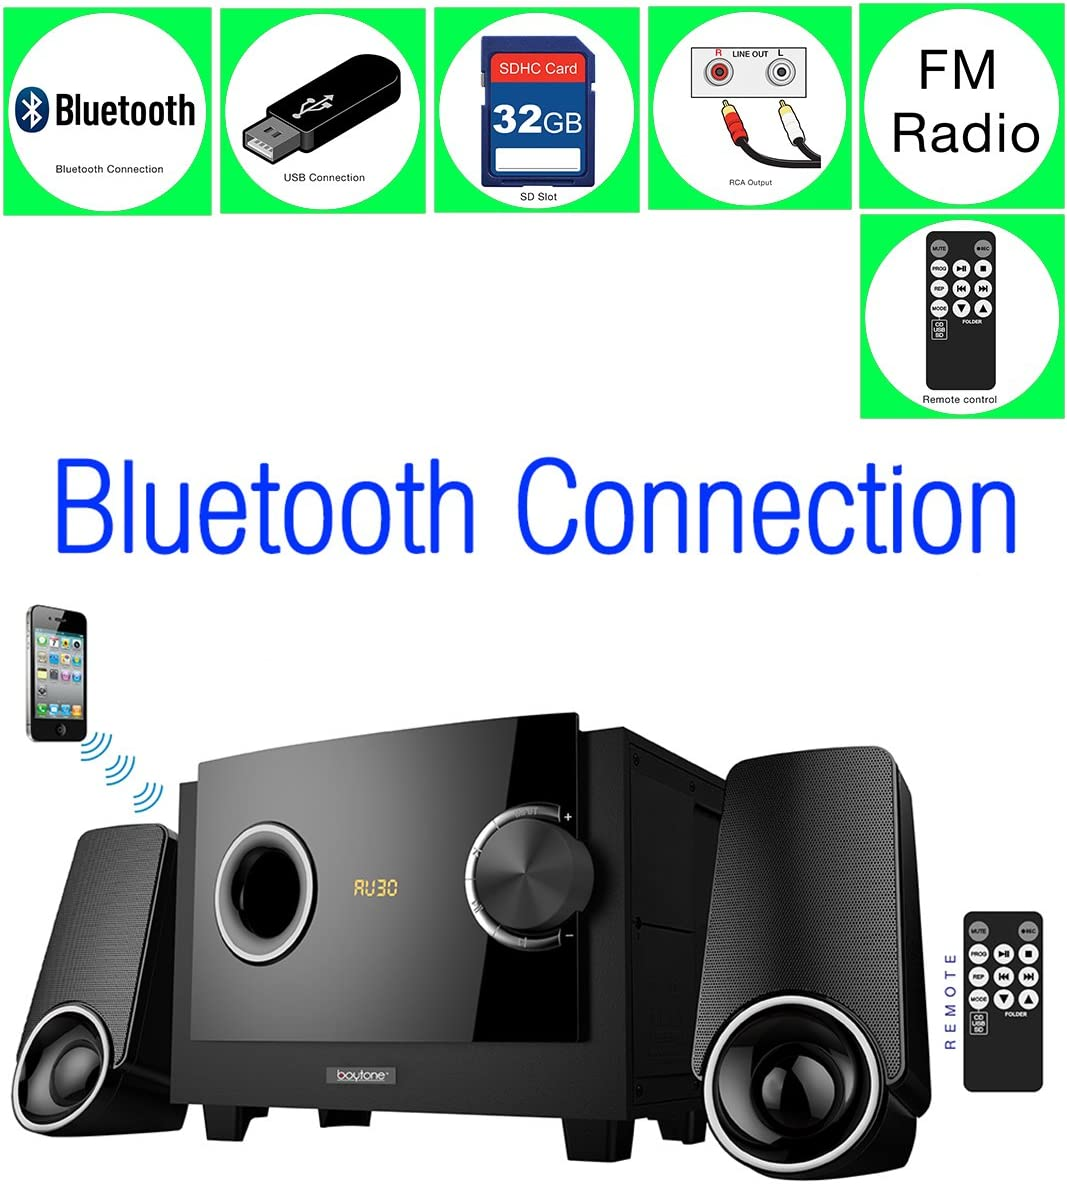 Boytone BT-3129F – Limited Edition Multimedia with Bluetooth Audio Hi-Fi Speakers System Powerful Bass Digital Display FM Radio + Supports USB/SD/AUX/PC/TV 2.1 Speaker System with 40 Watts & (Full function Remote included) Home Audio for Smartphones,Tablets,Desktop Computers,Laptops,TV & More